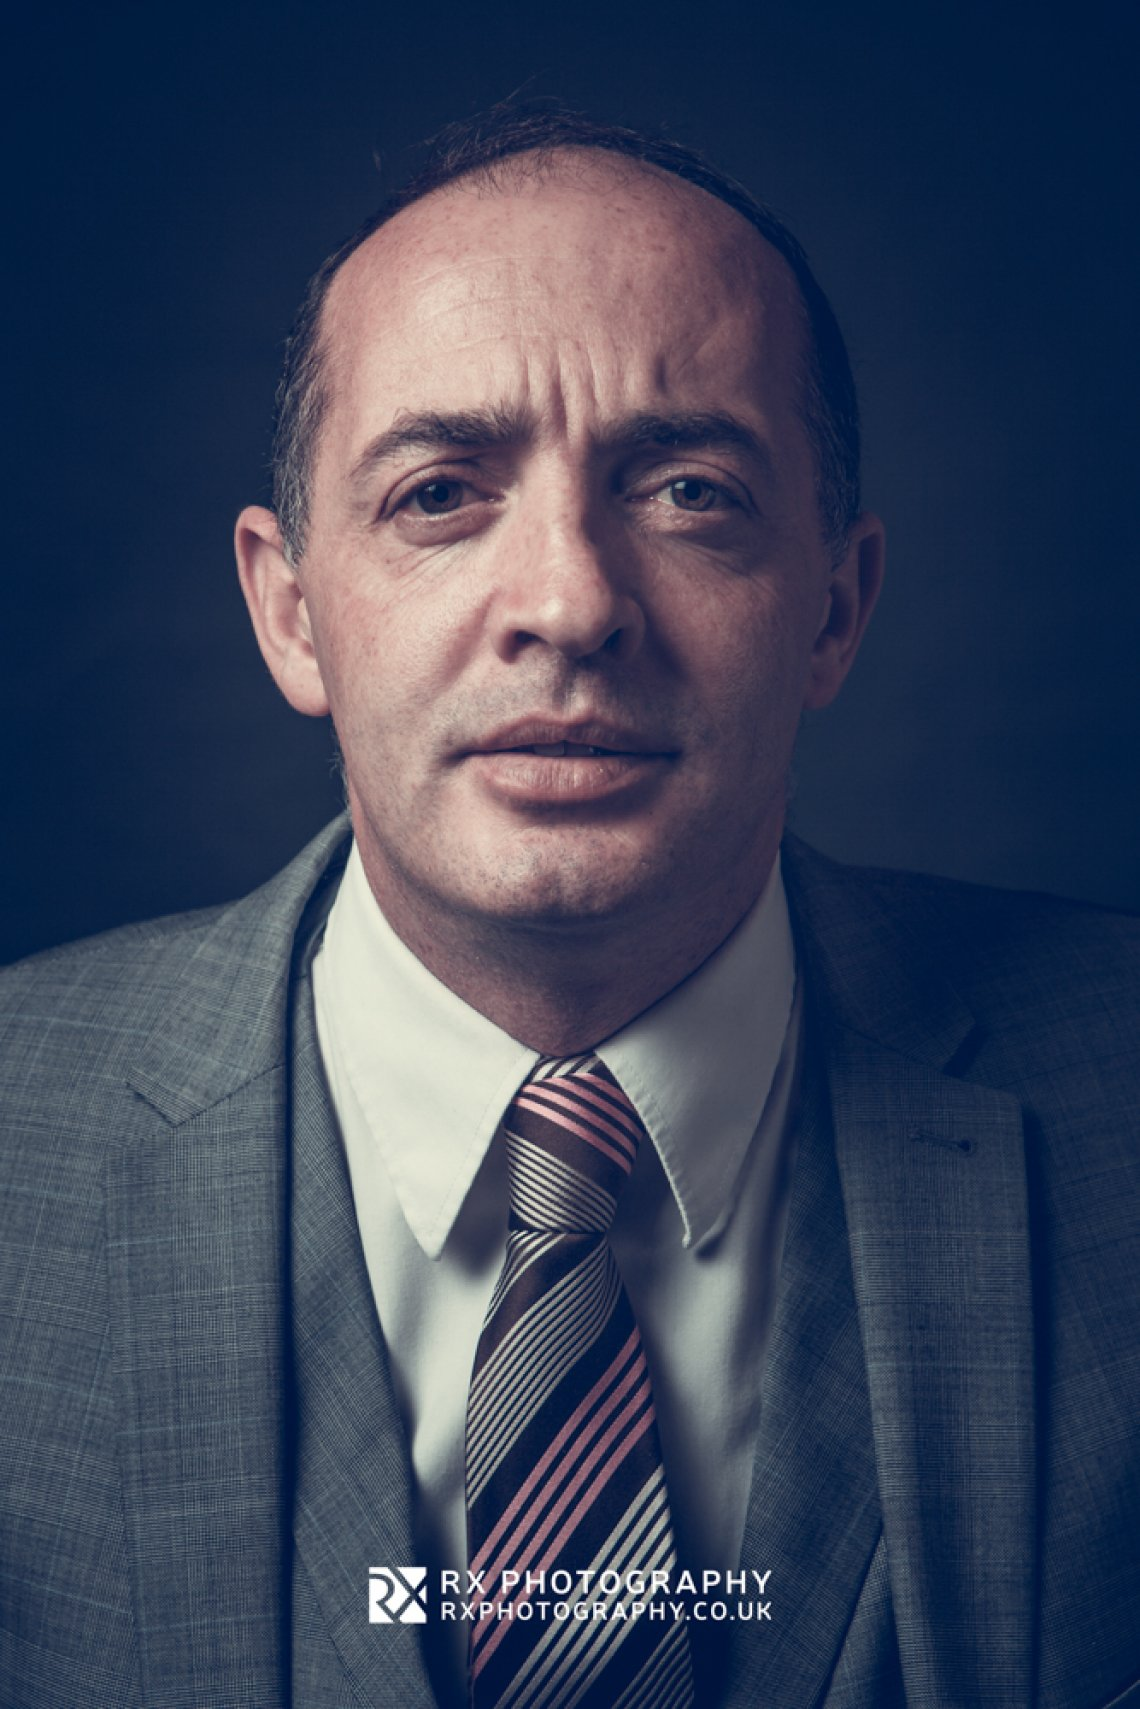 RX Photography portrait headshot of male in suit